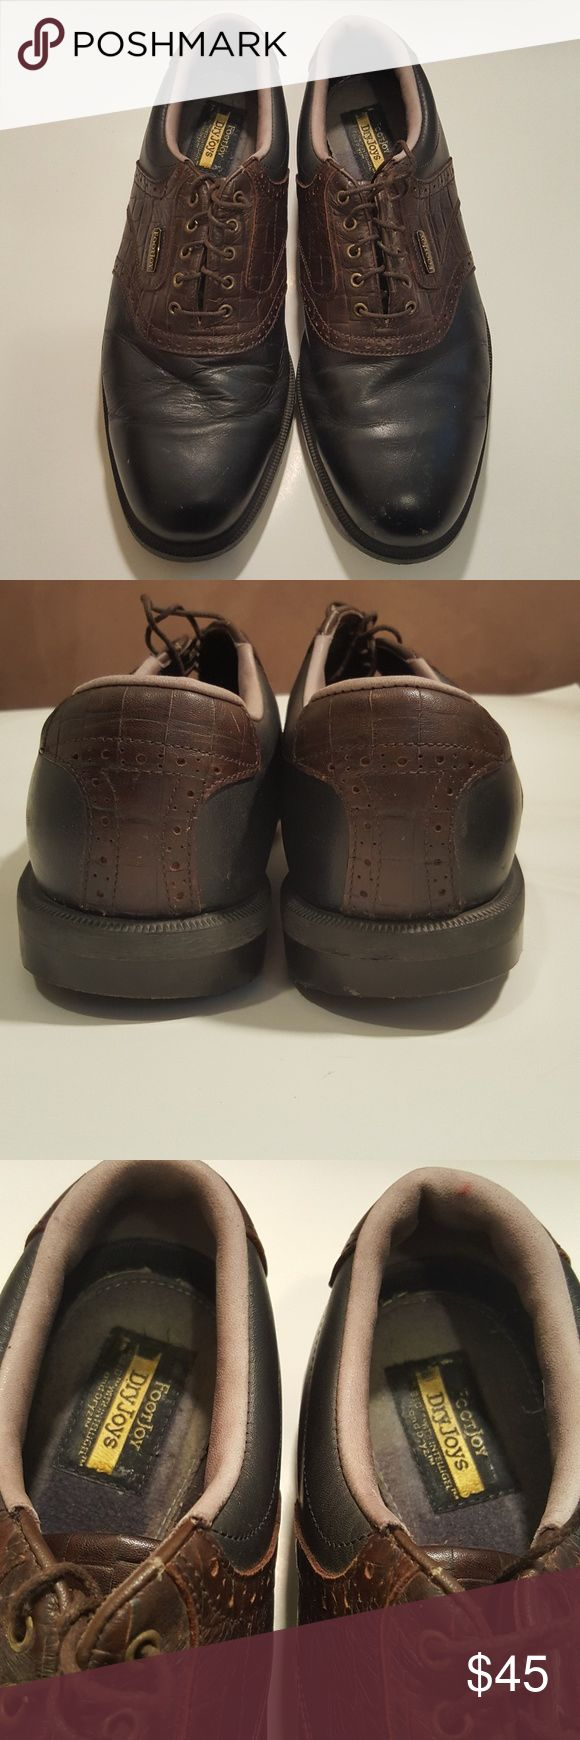 Pre-owned FootJoy Men's Golf Shoes Blk/Brn sz 10.5 Pre-owned in good condition FootJoy Men's Golf Shoes Blk/Brn saddles sz 10.5. There are scrapes on the toe area. These are DryJoys. FootJoy Shoes Athletic Shoes